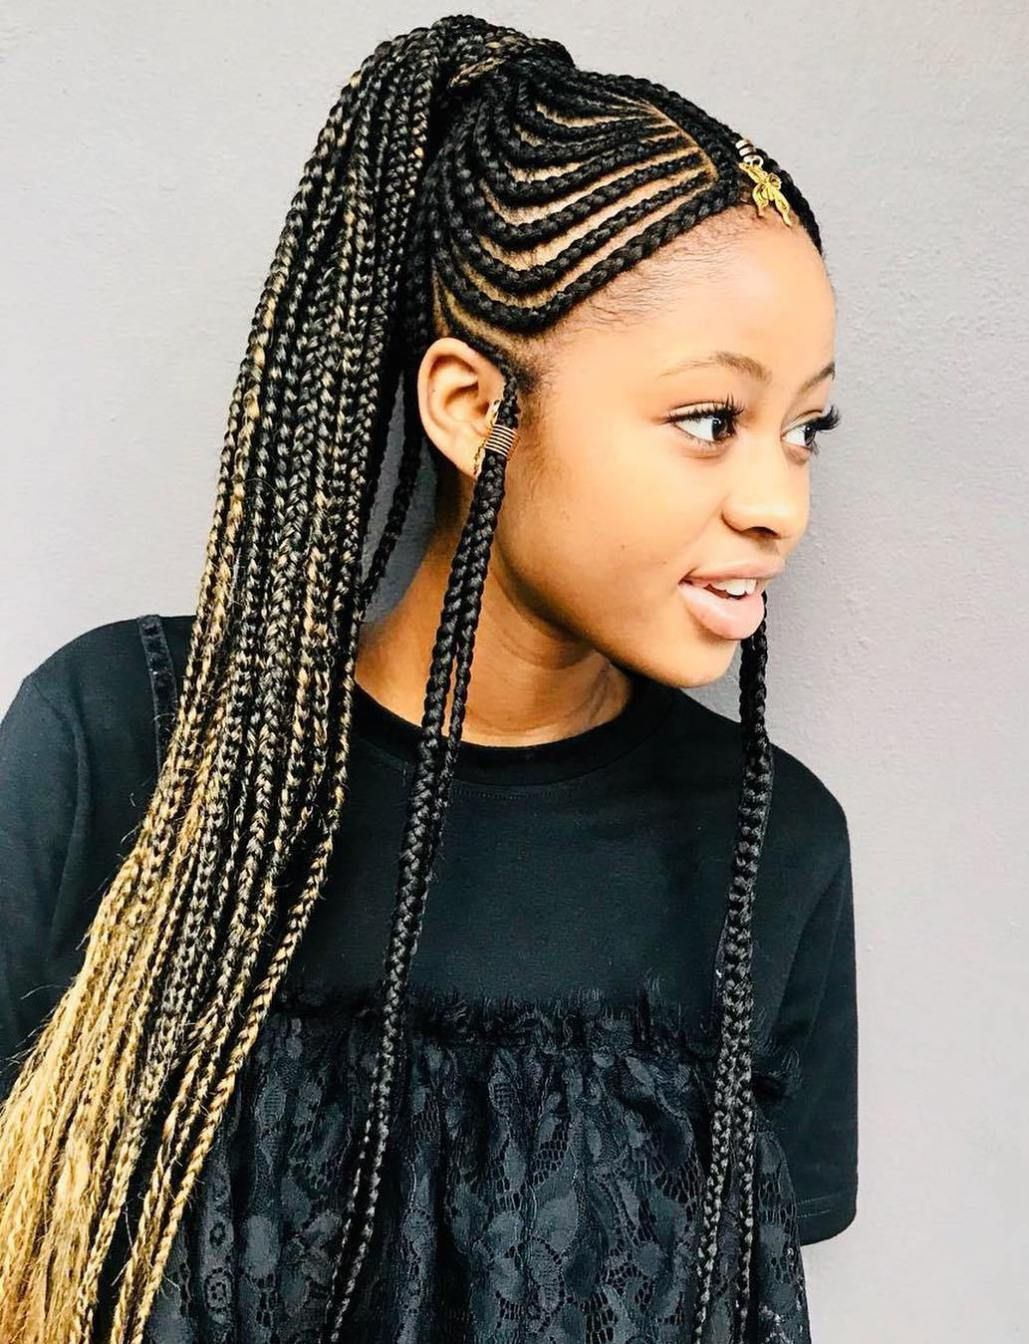 100 African Braids Hairstyle Pictures to Inspire You